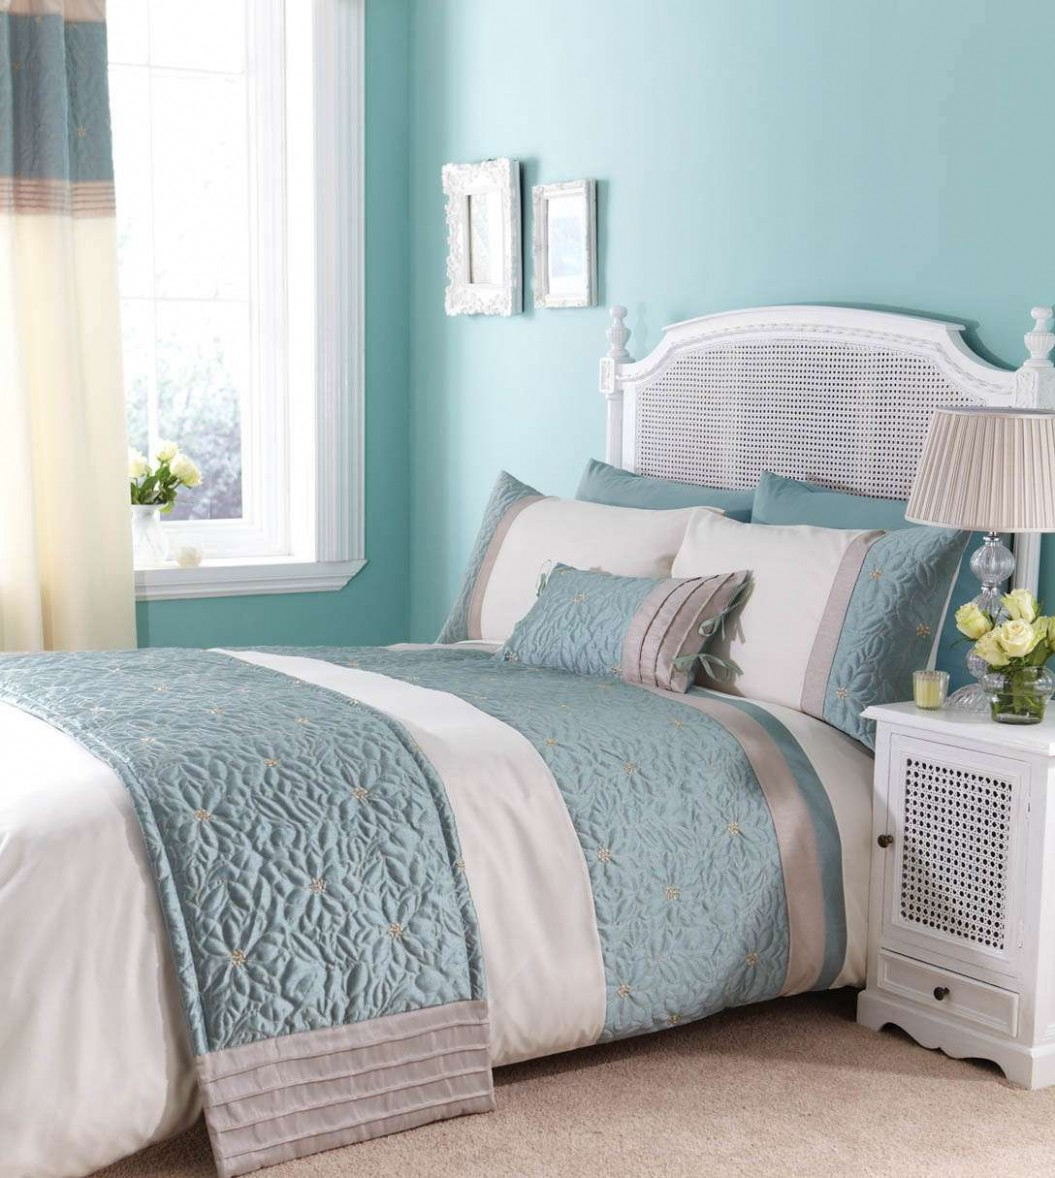 robins egg blue bedroom   to tag duck-egg-blue-bedroom-ideas  - Bedroom Ideas Using Duck Egg Blue